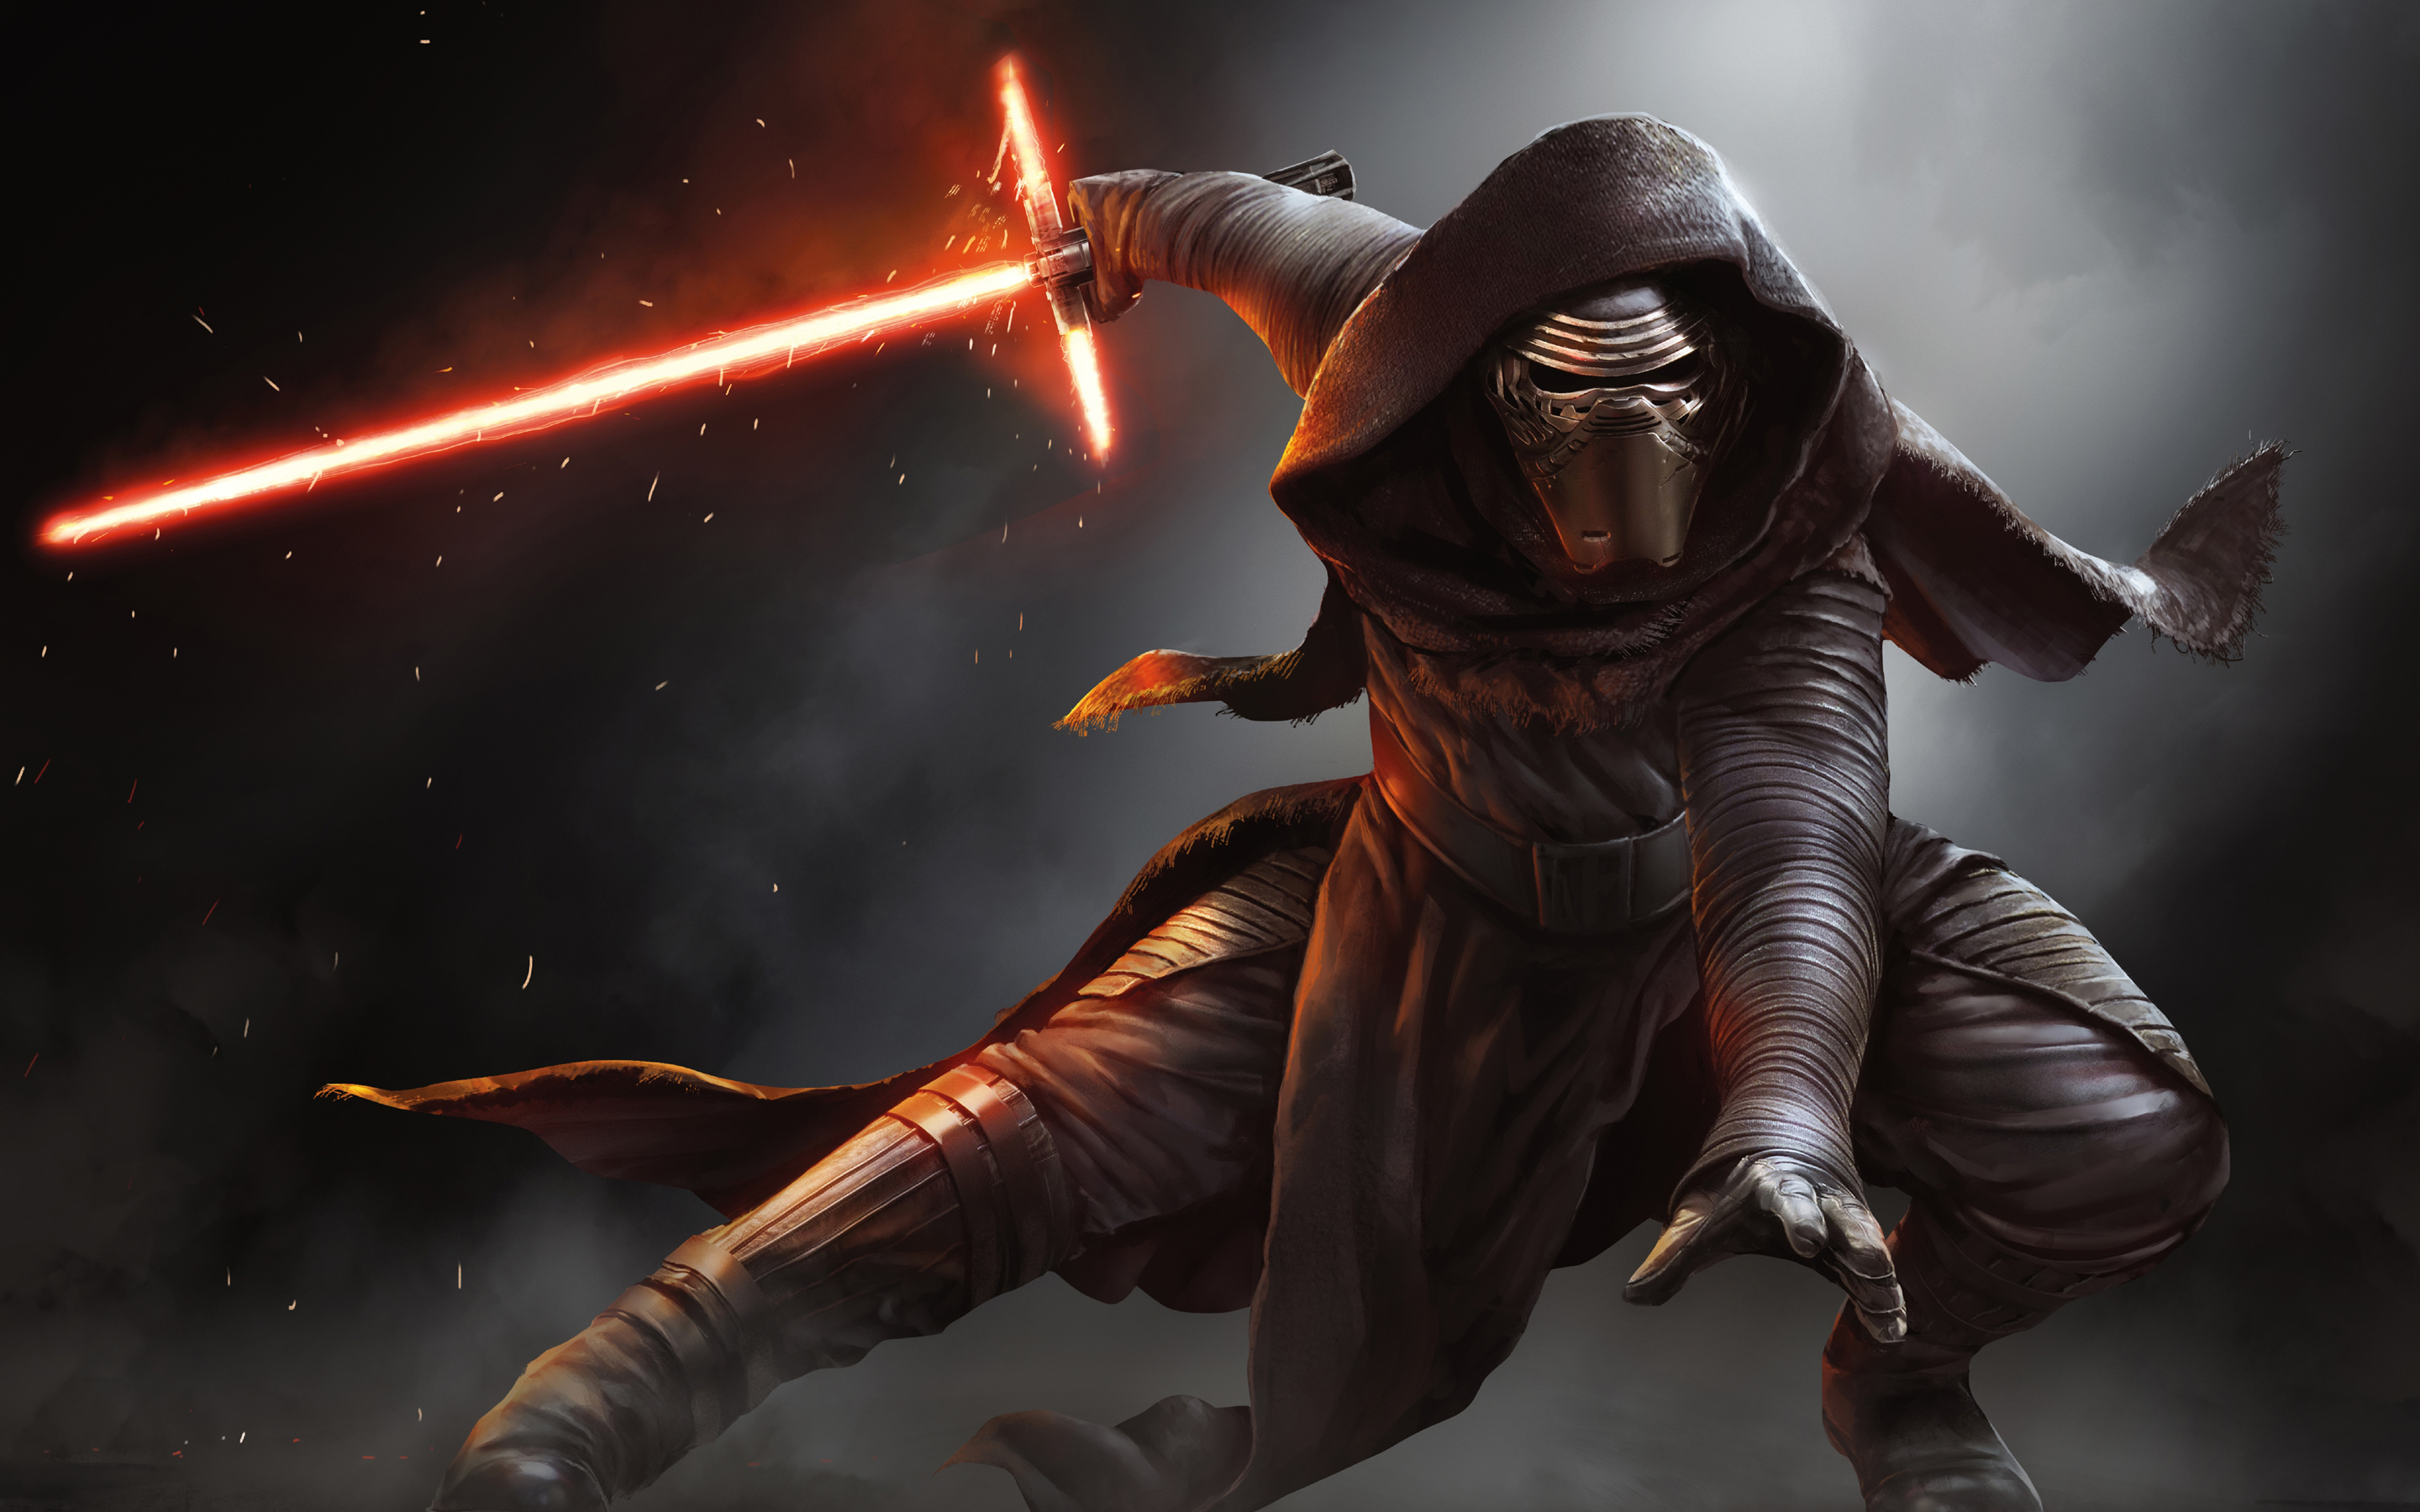 Star Wars Images Kylo Ren HD Wallpaper And Background Photos